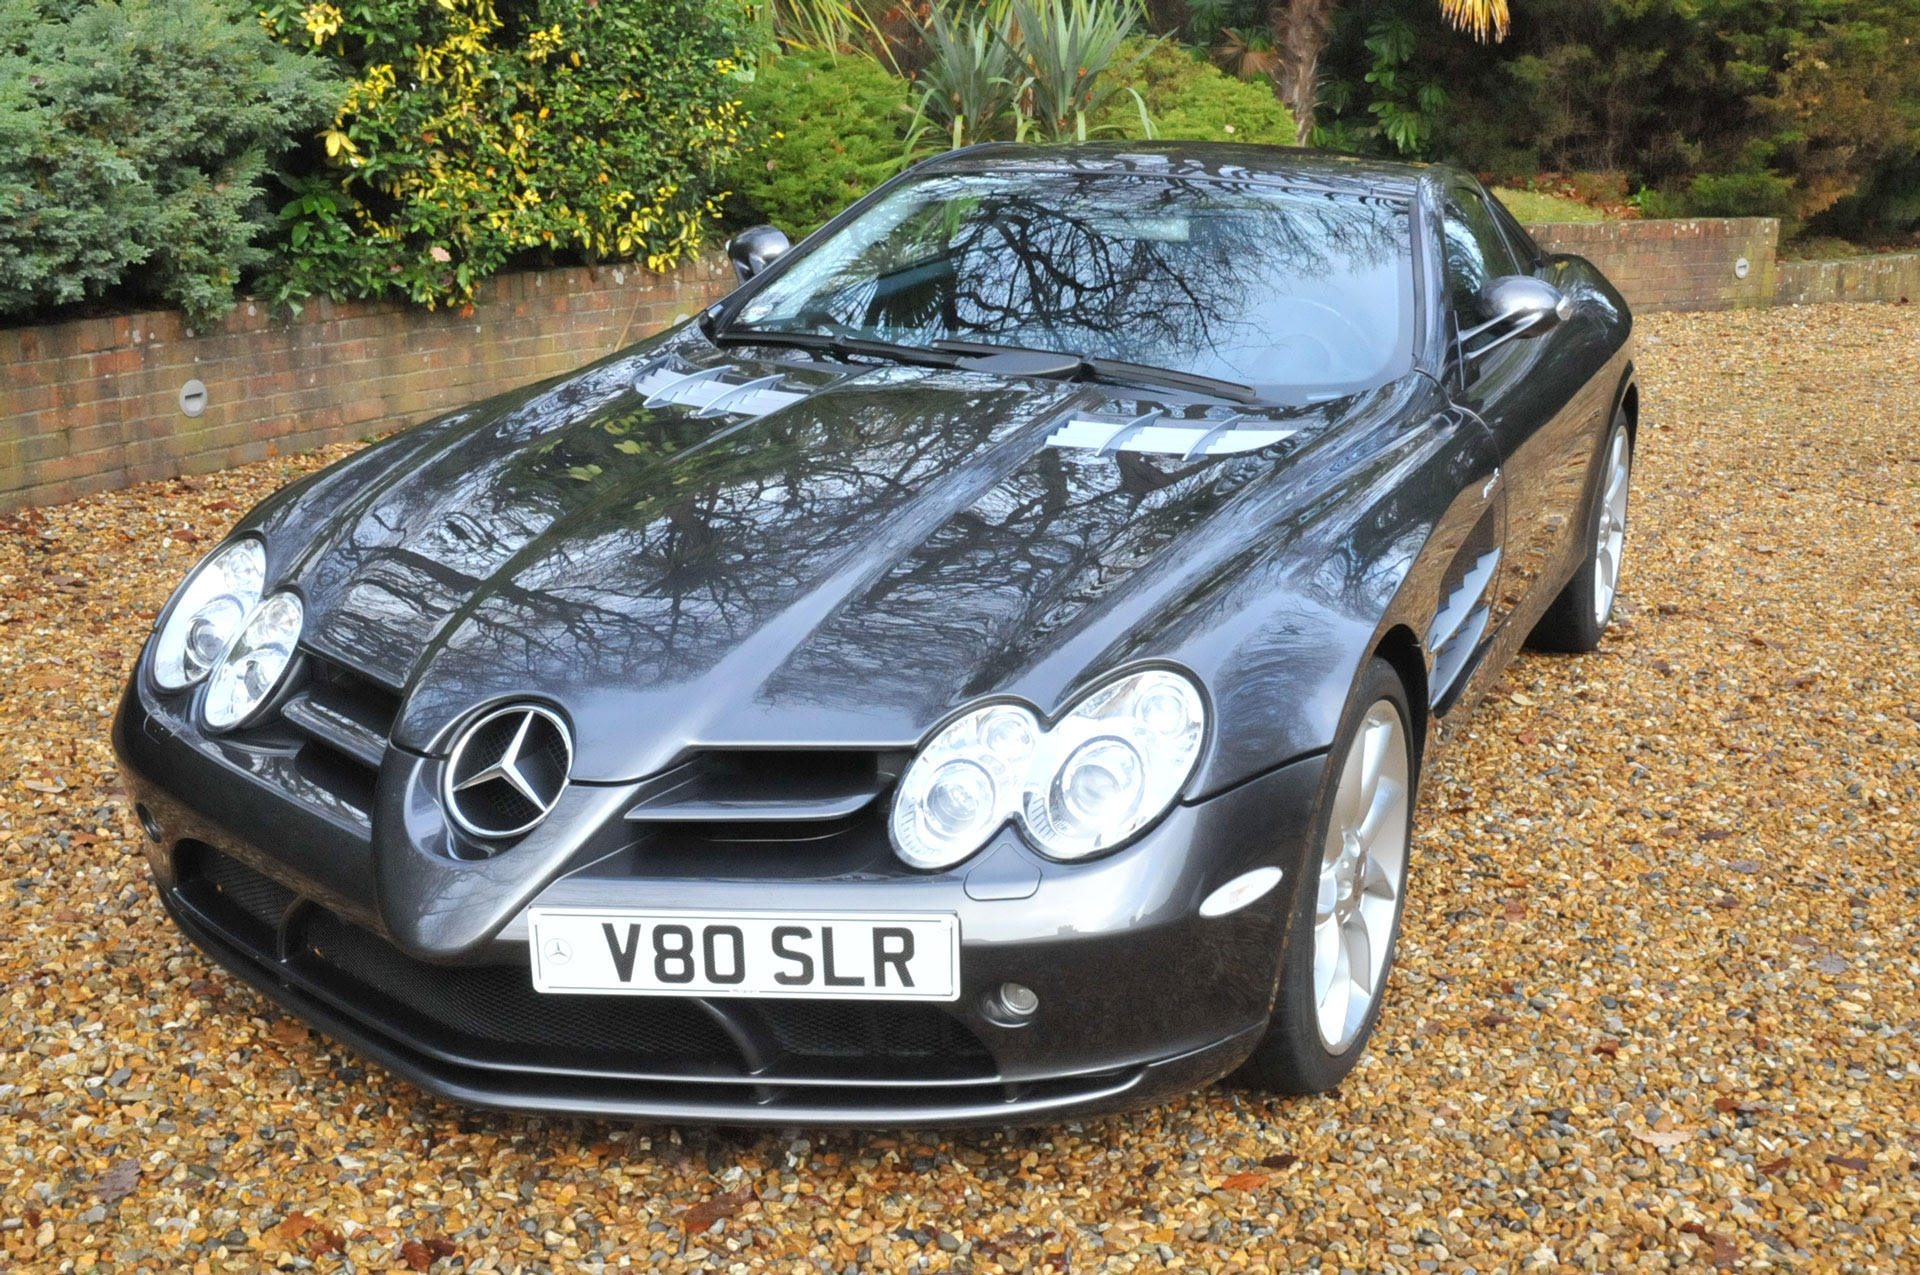 2007 Mclaren Mercedes SLR for sale 01420474411 - LCA